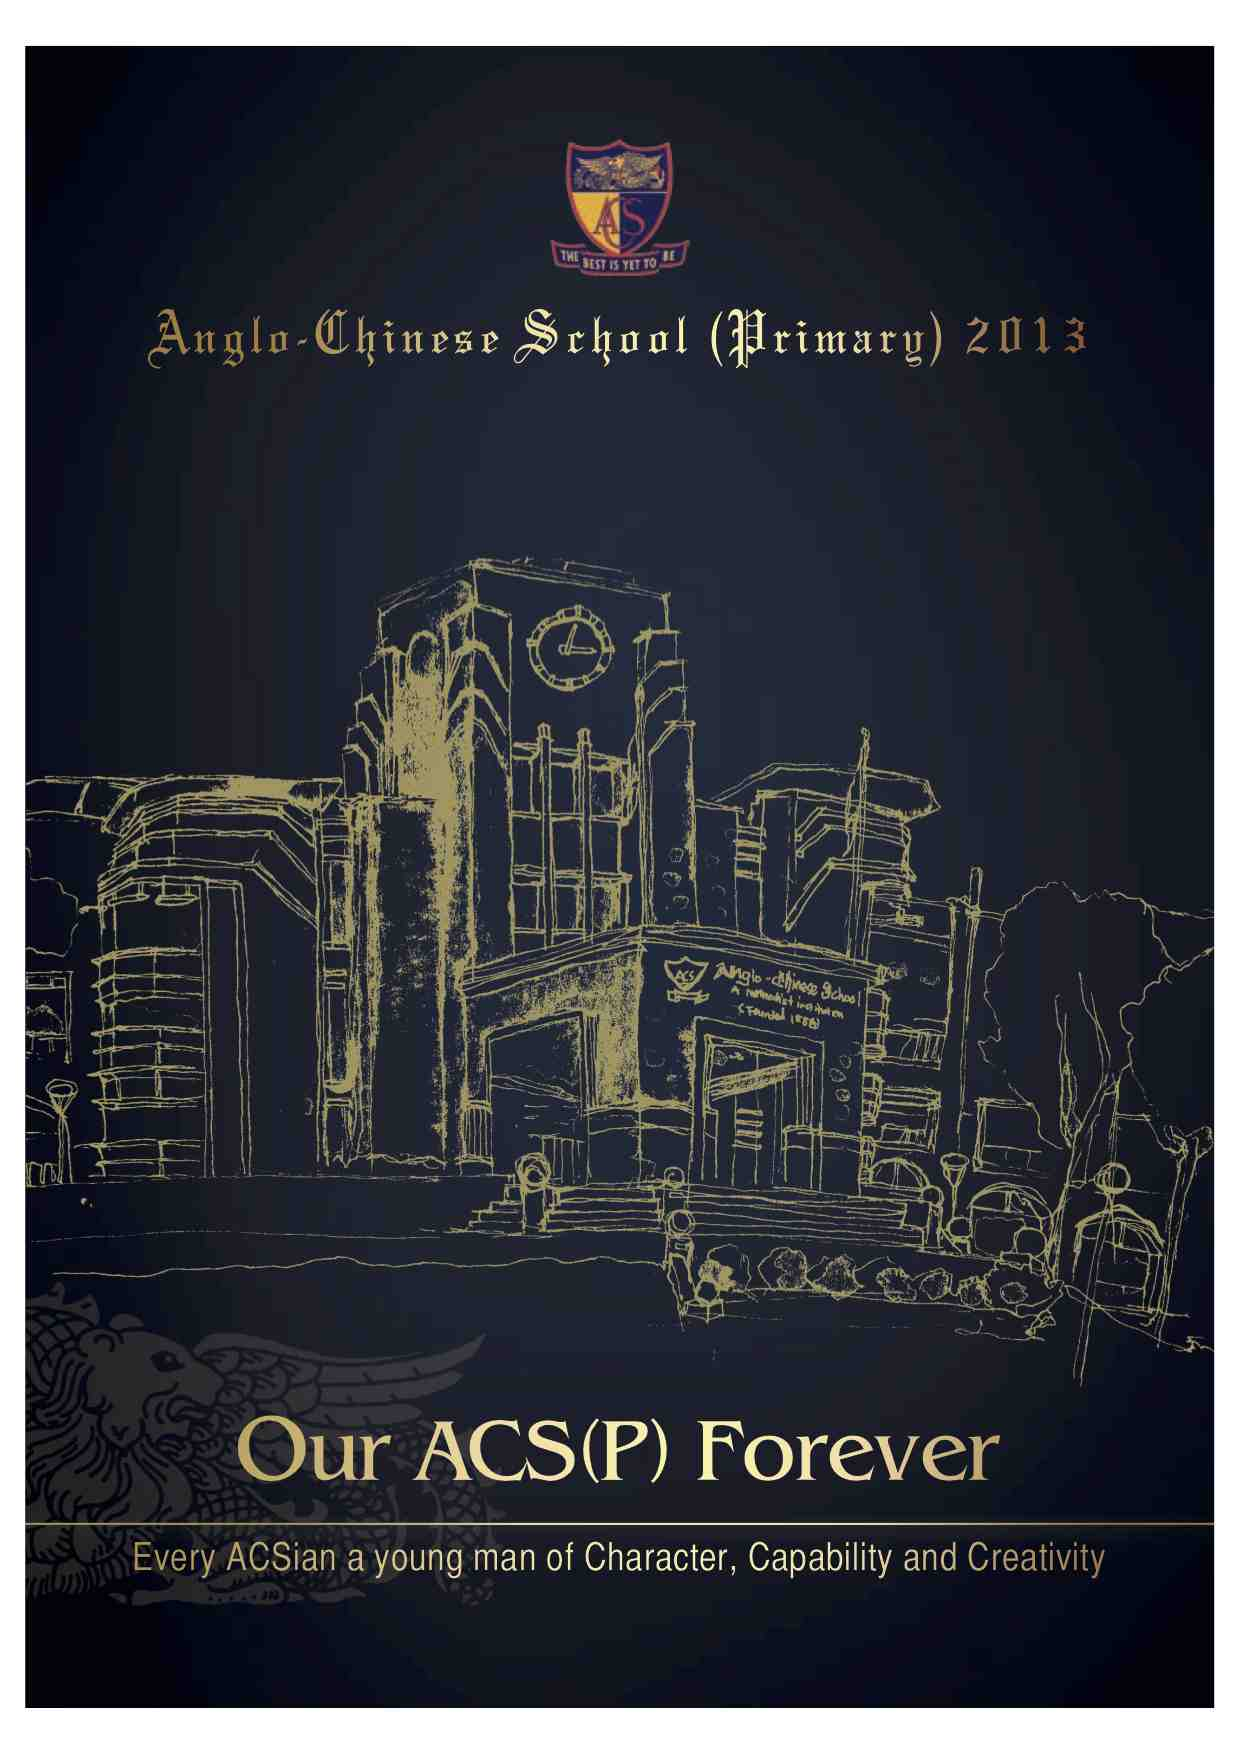 ACS{P) Magazine  2013 Front Cover.jpg